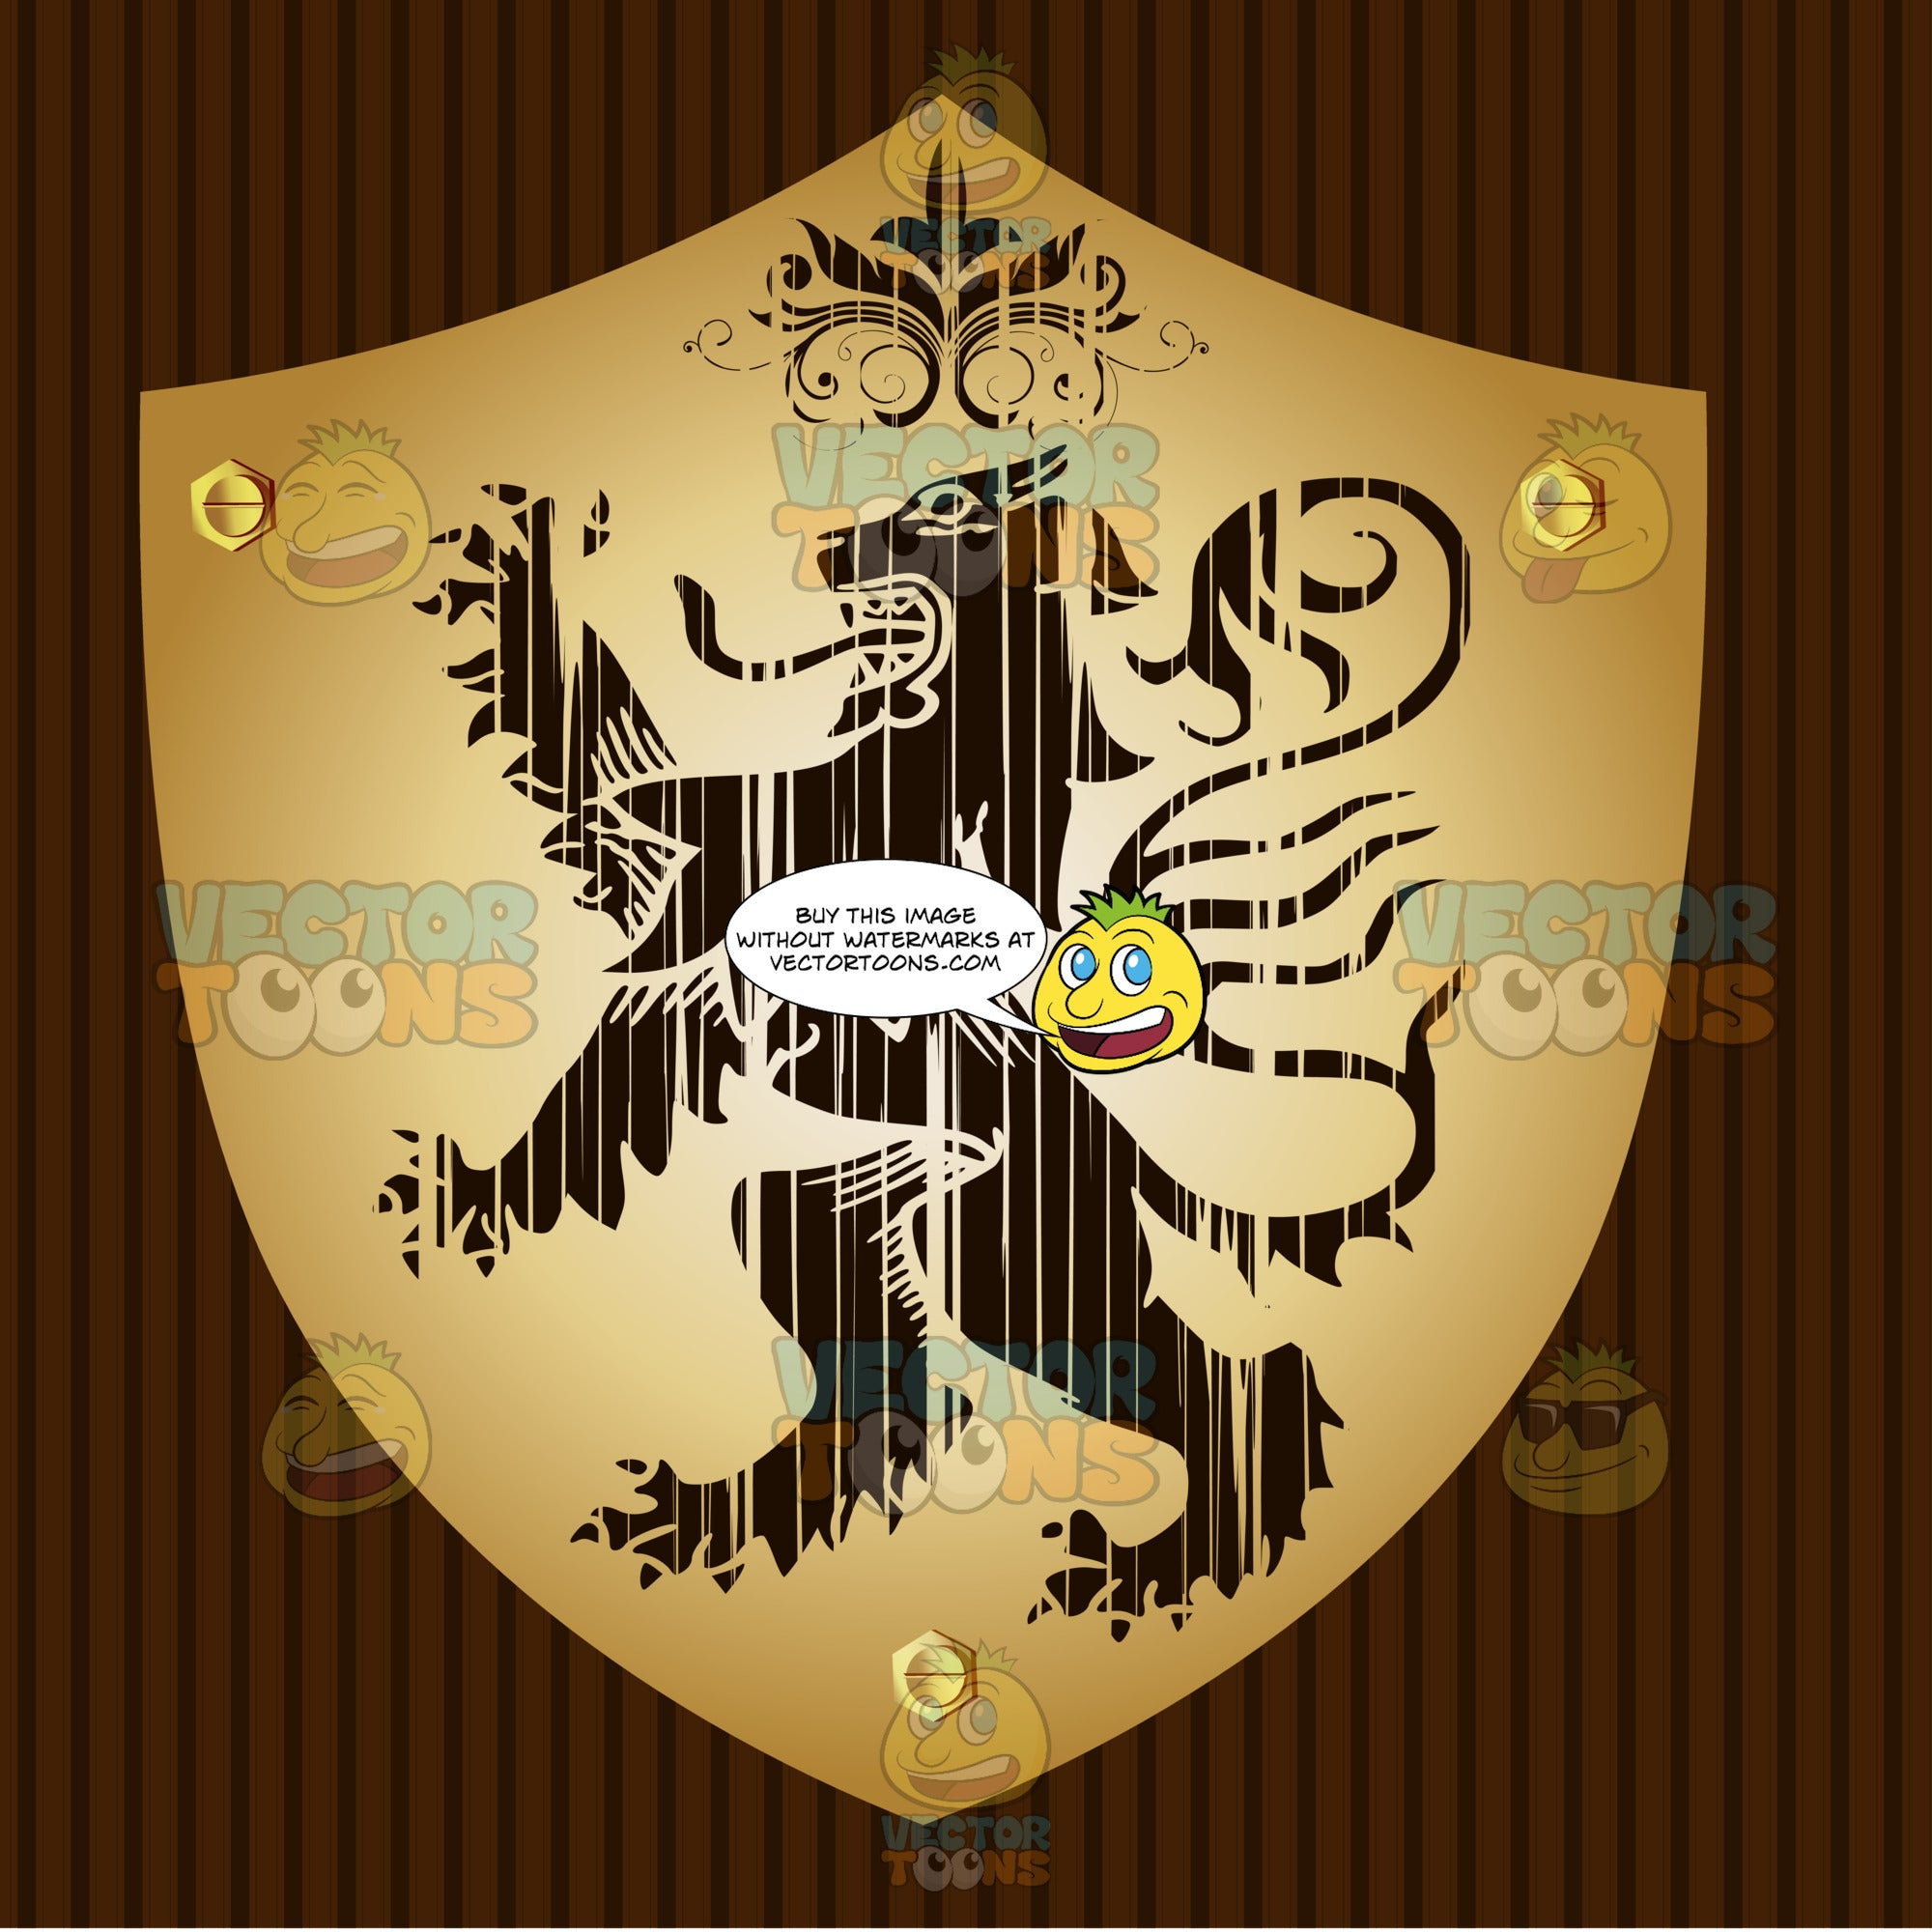 Medieval Stylized Lion Standing Up On Two Legs, Claws Up With Long Serpent Tongue And Long Tail With Ornate Florishes Coat Of Arms On Gold Plate Screwed On Wooden Brown Background